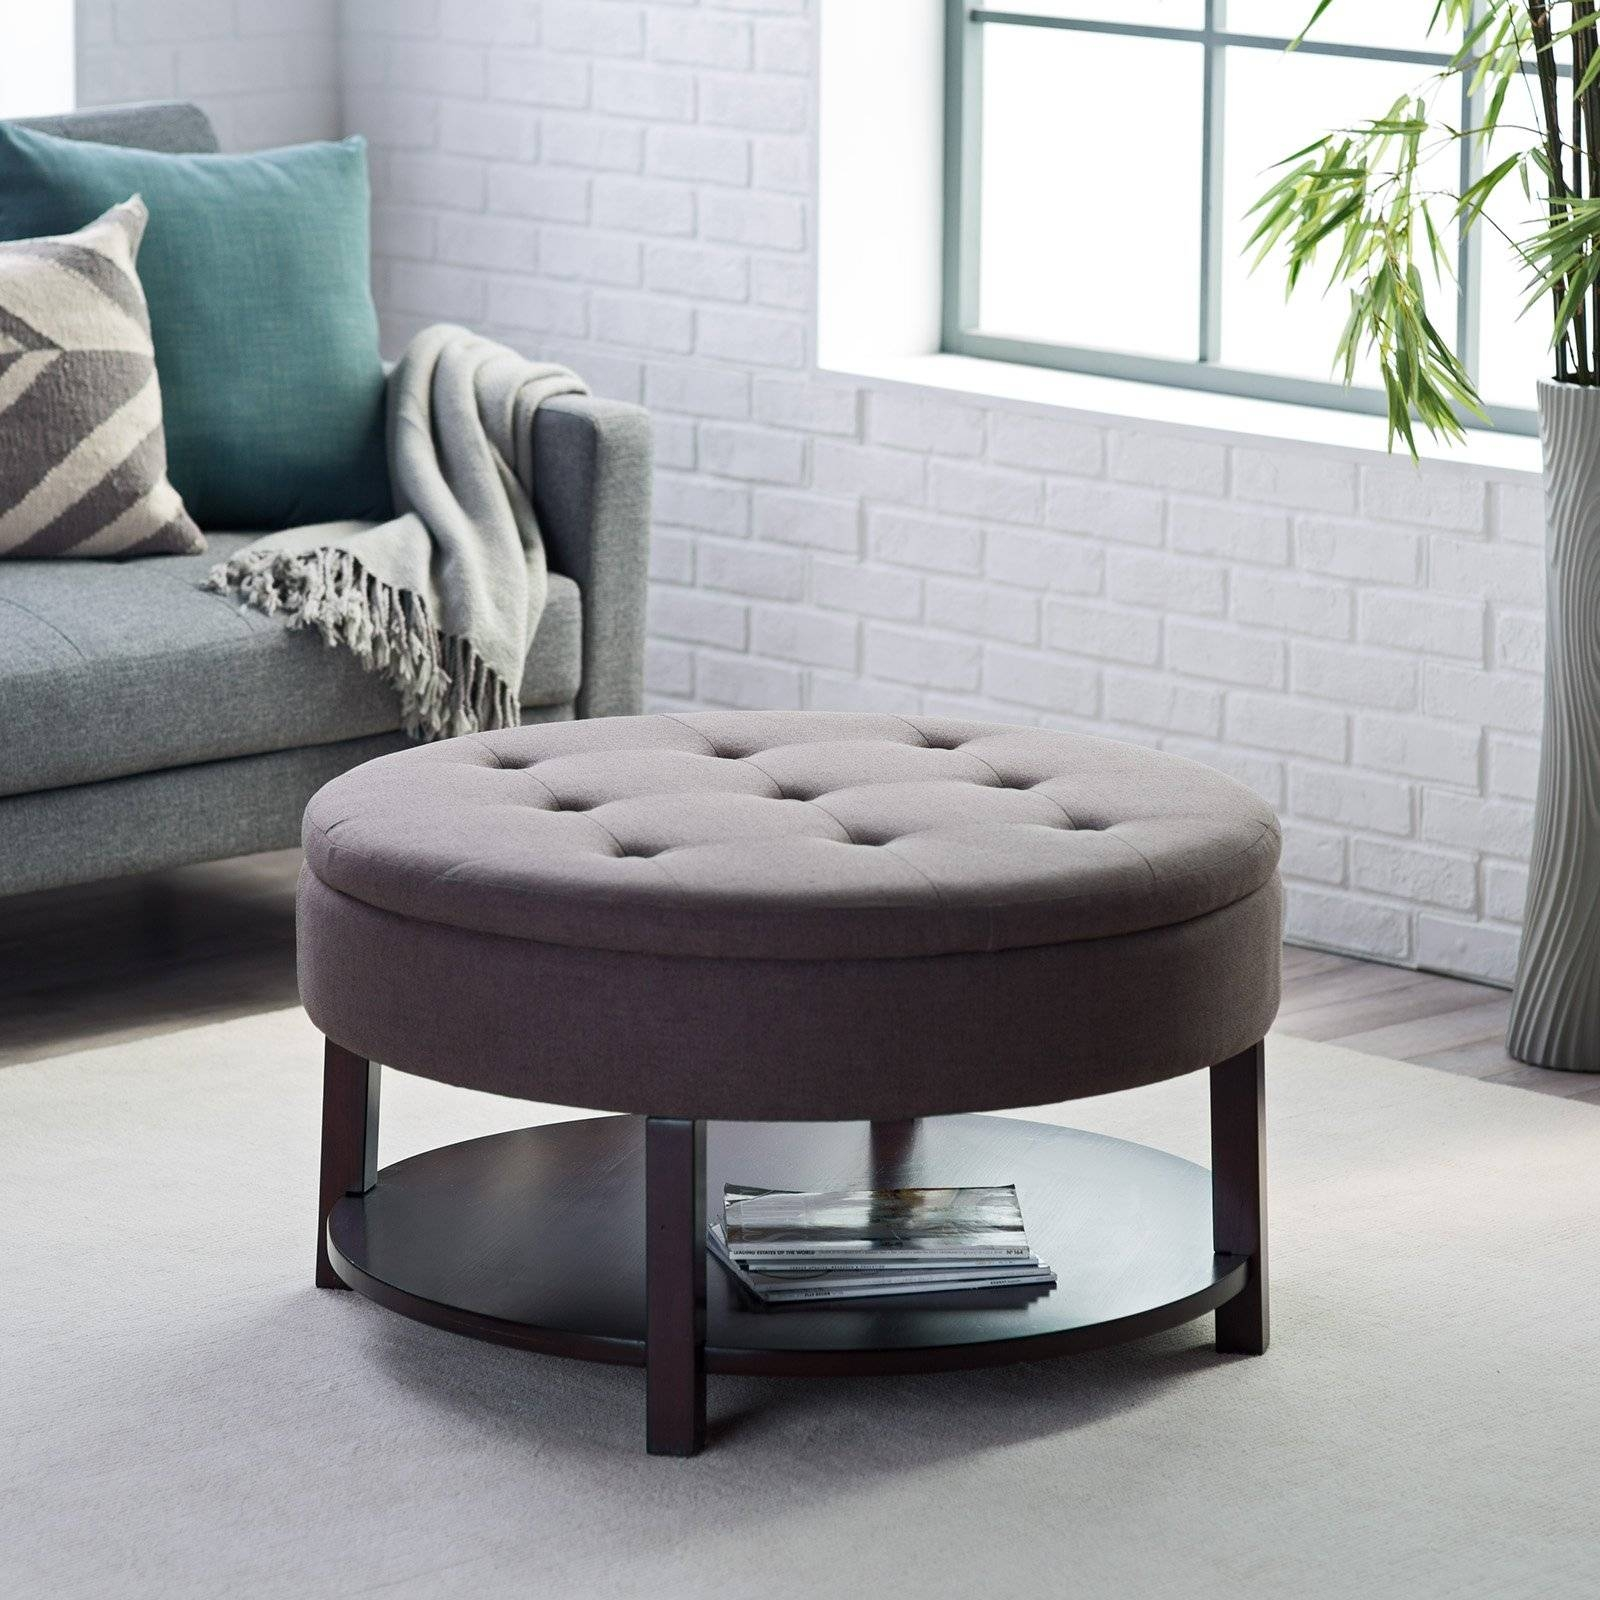 Coffee Table: Stylish Coffee Table Ottoman Designs Square Leather throughout Fabric Coffee Tables (Image 10 of 30)